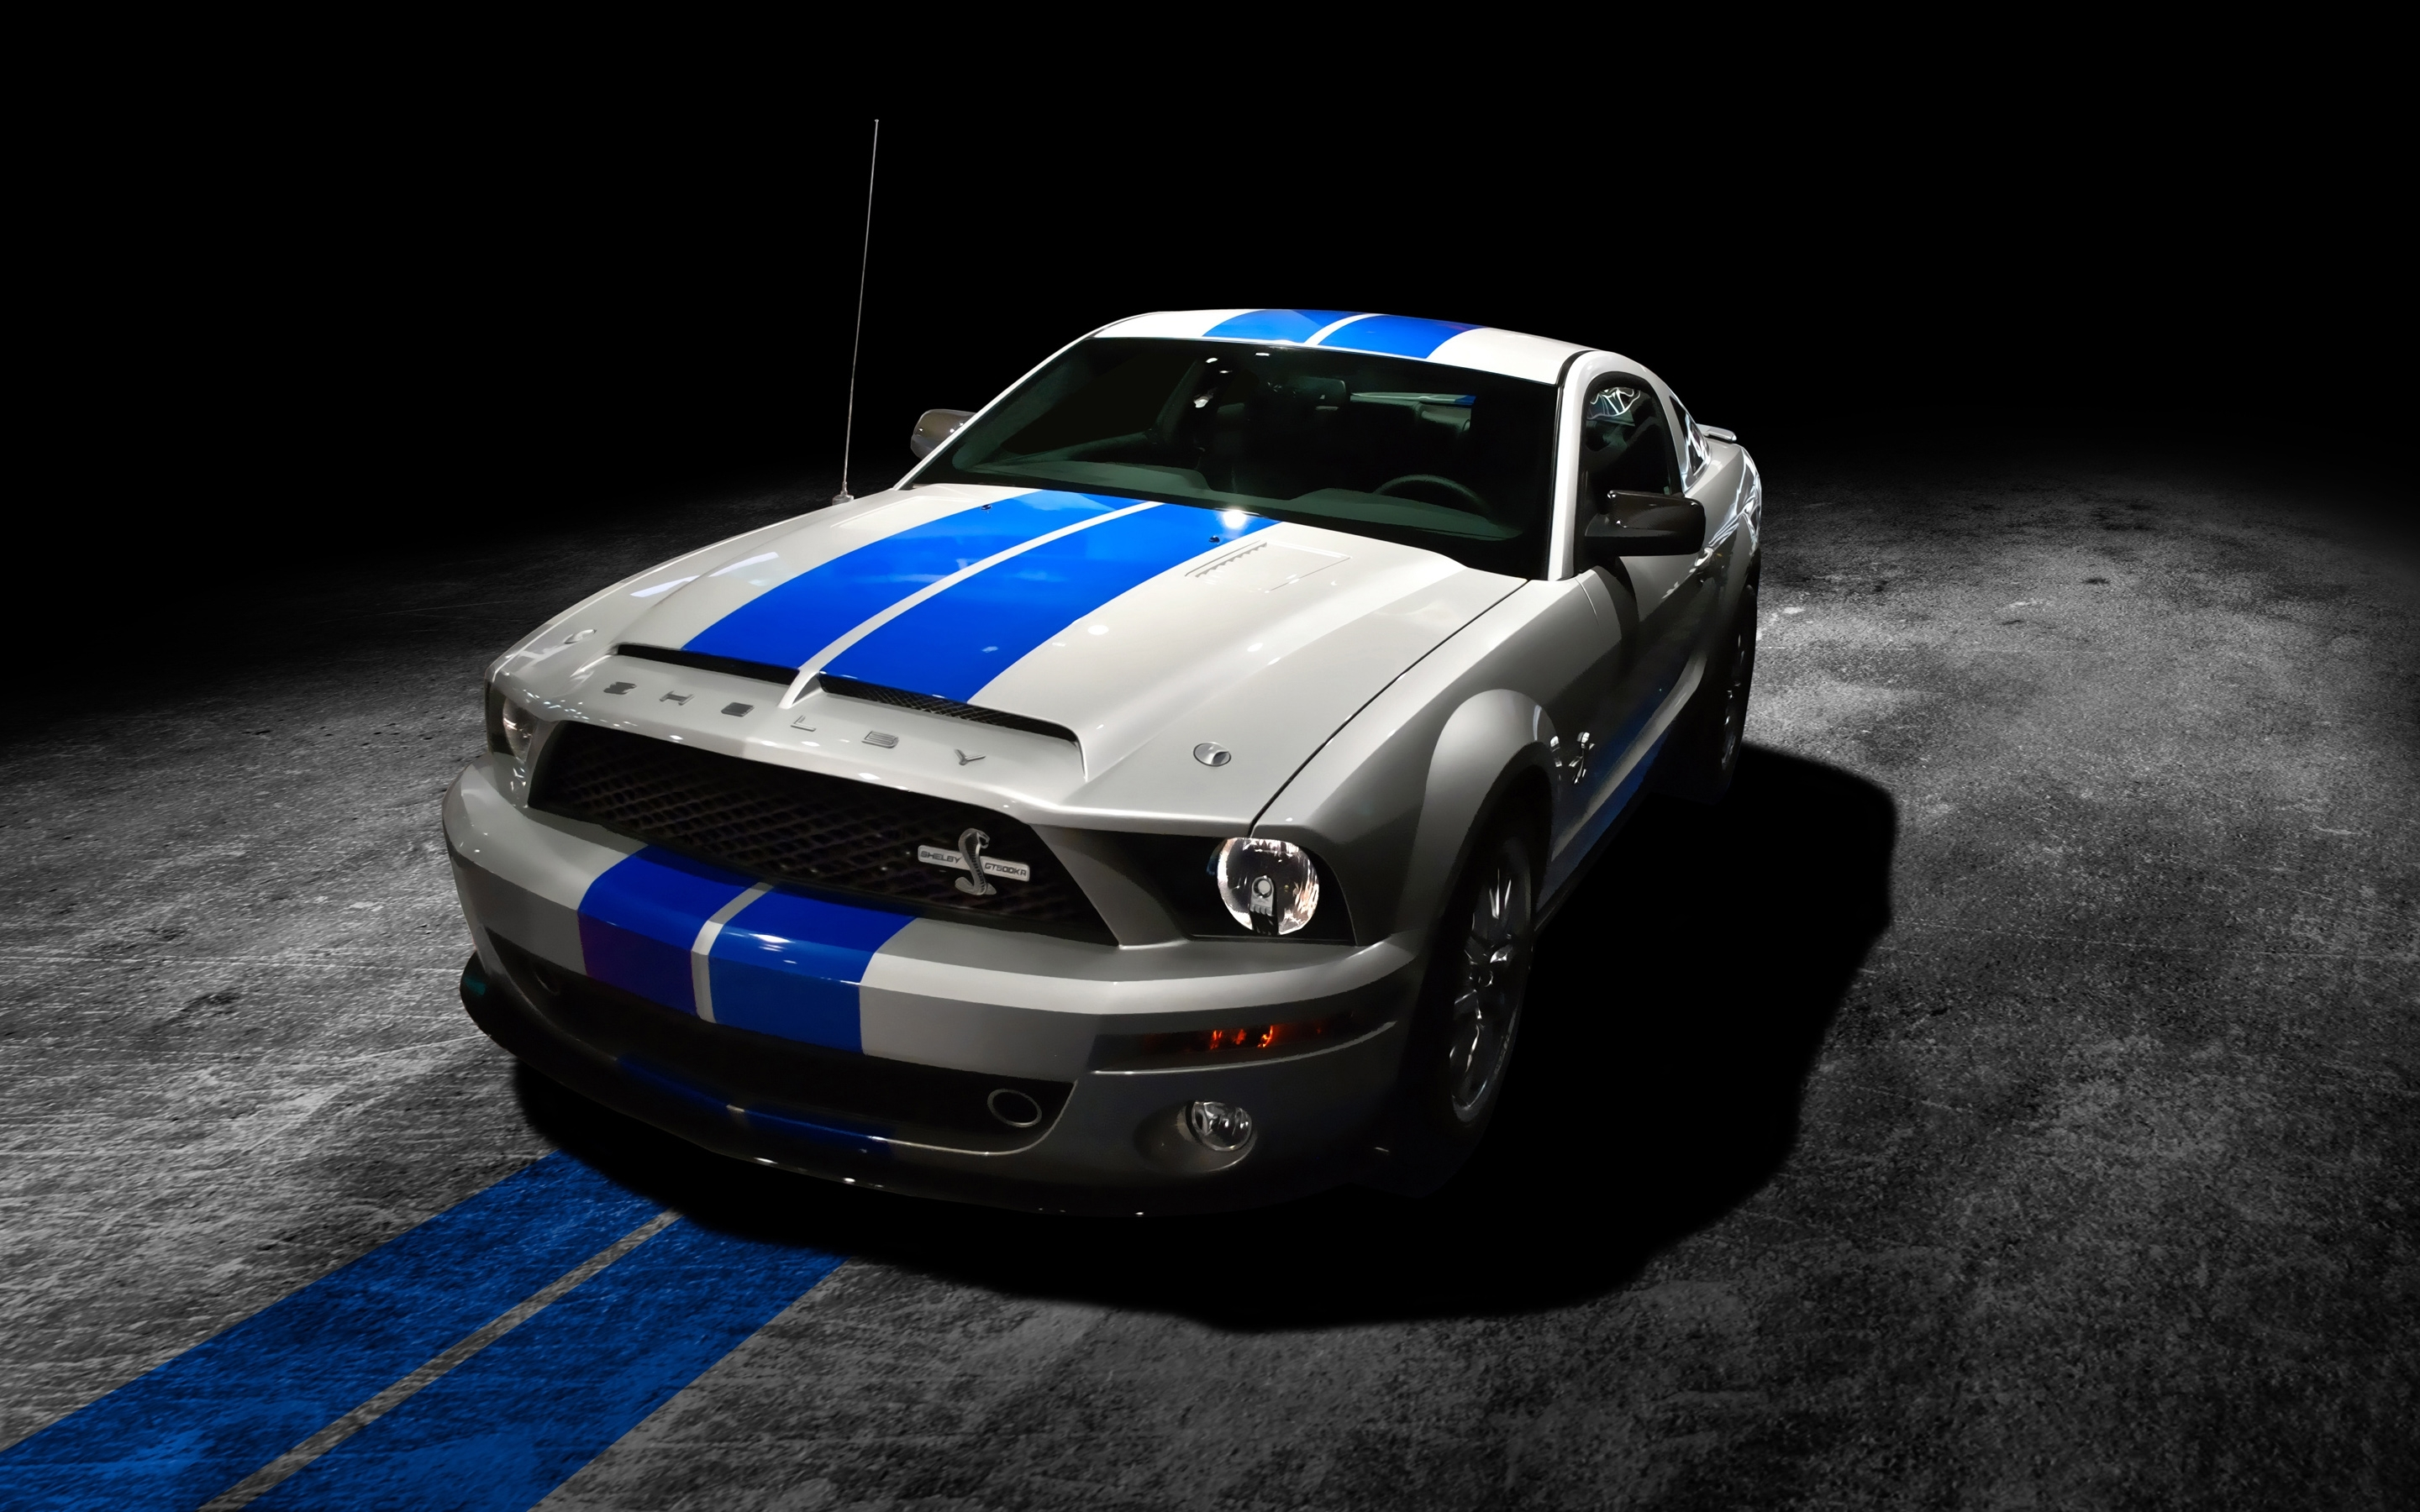 ford mustang shelby gt500 2013 wallpapers | hd wallpapers | id #11671